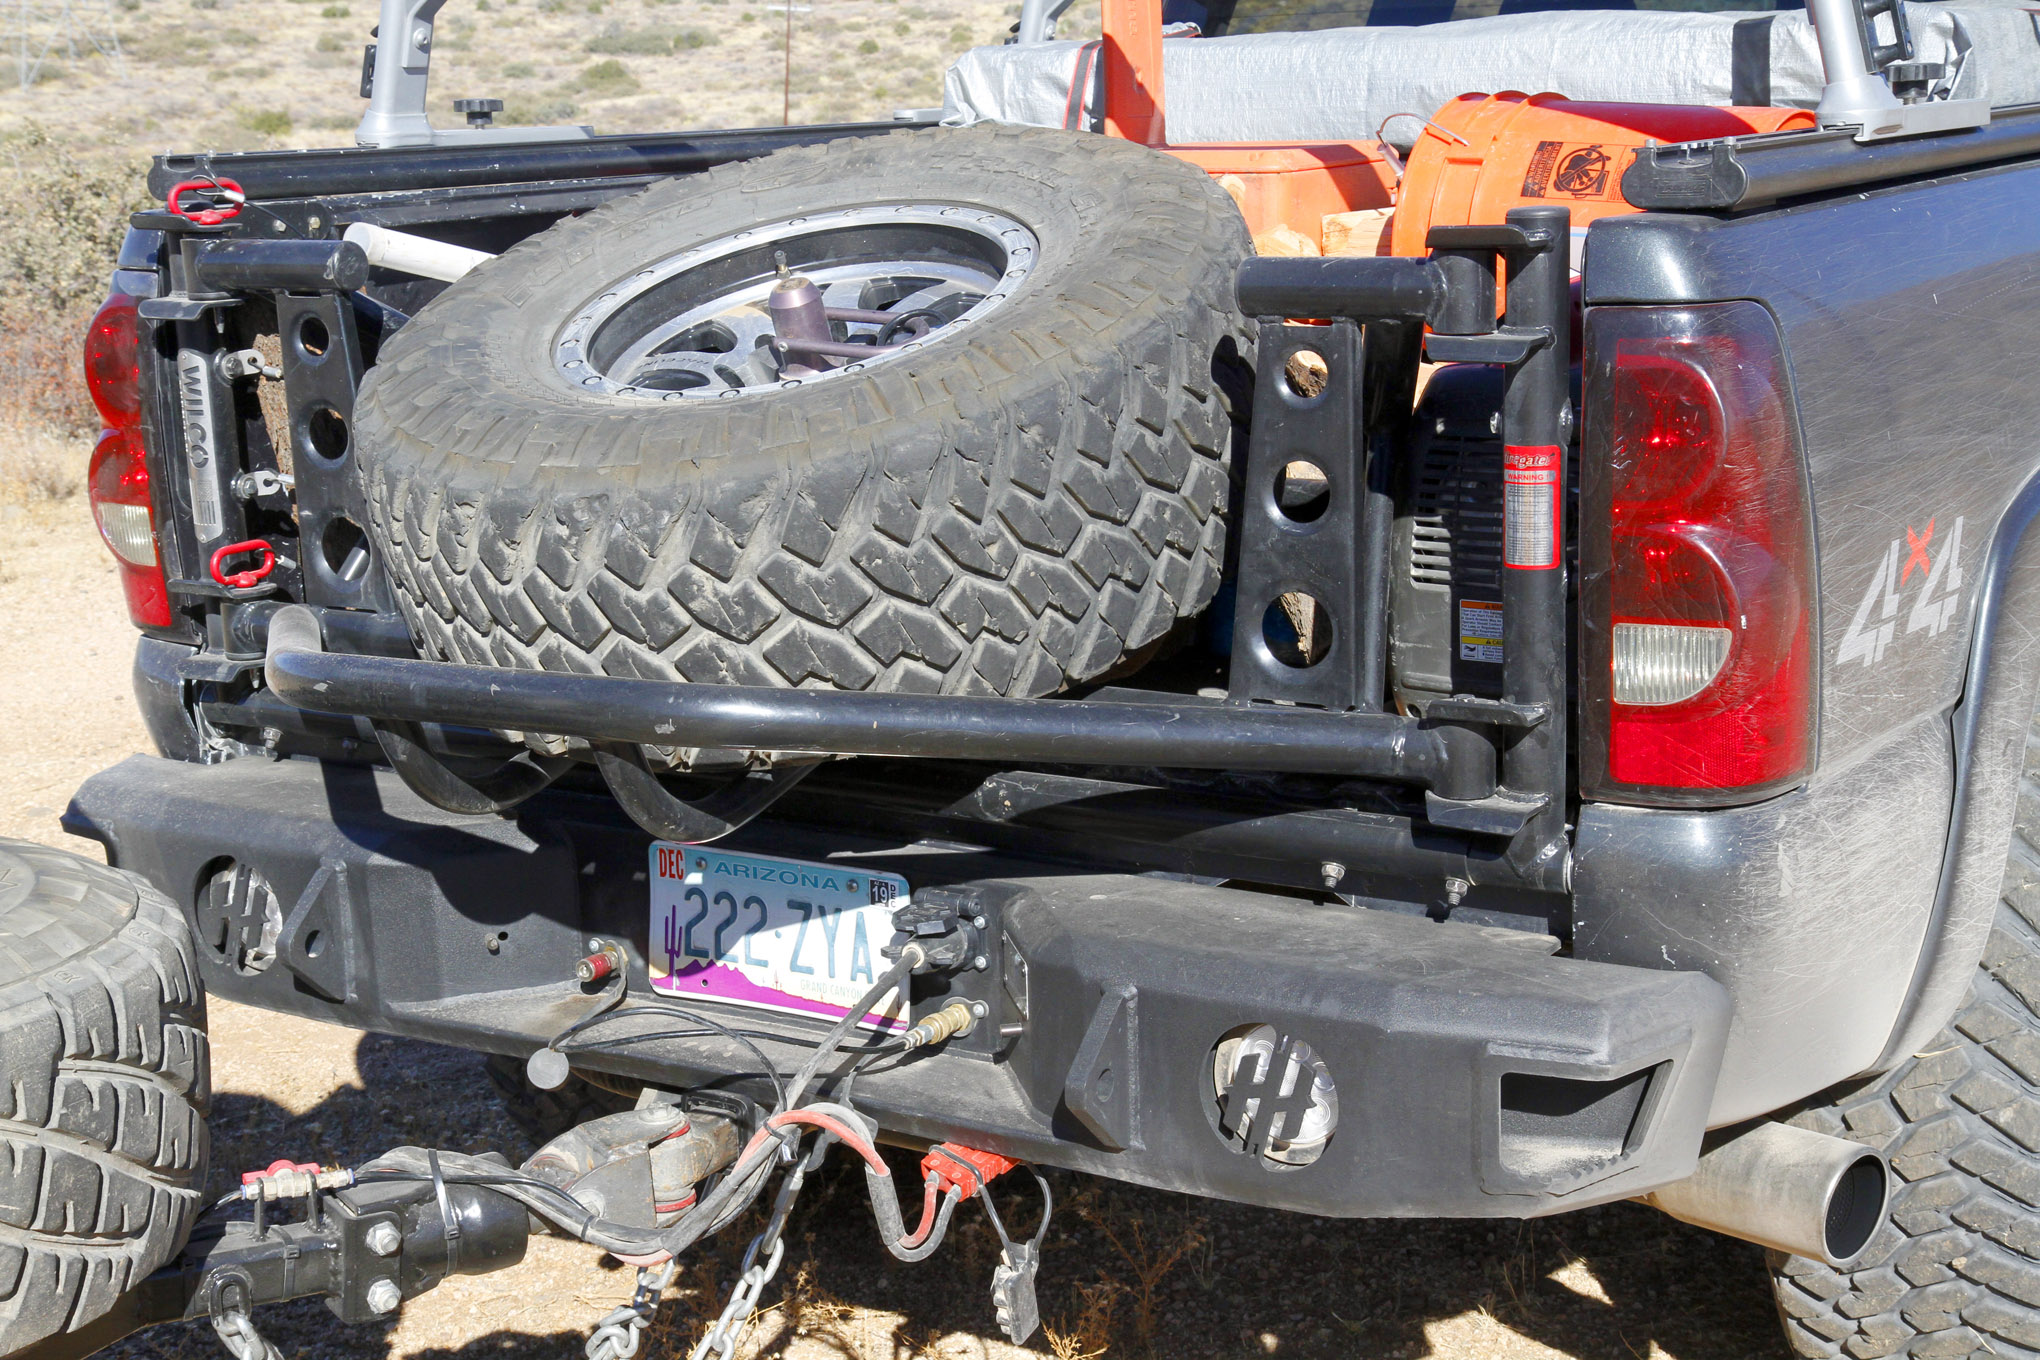 At the rear of the truck, you'll find another Hammerhead bumper and a Wilco Offroad Tiregate supporting a fullsize spare tire that will fit the truck or trailer.